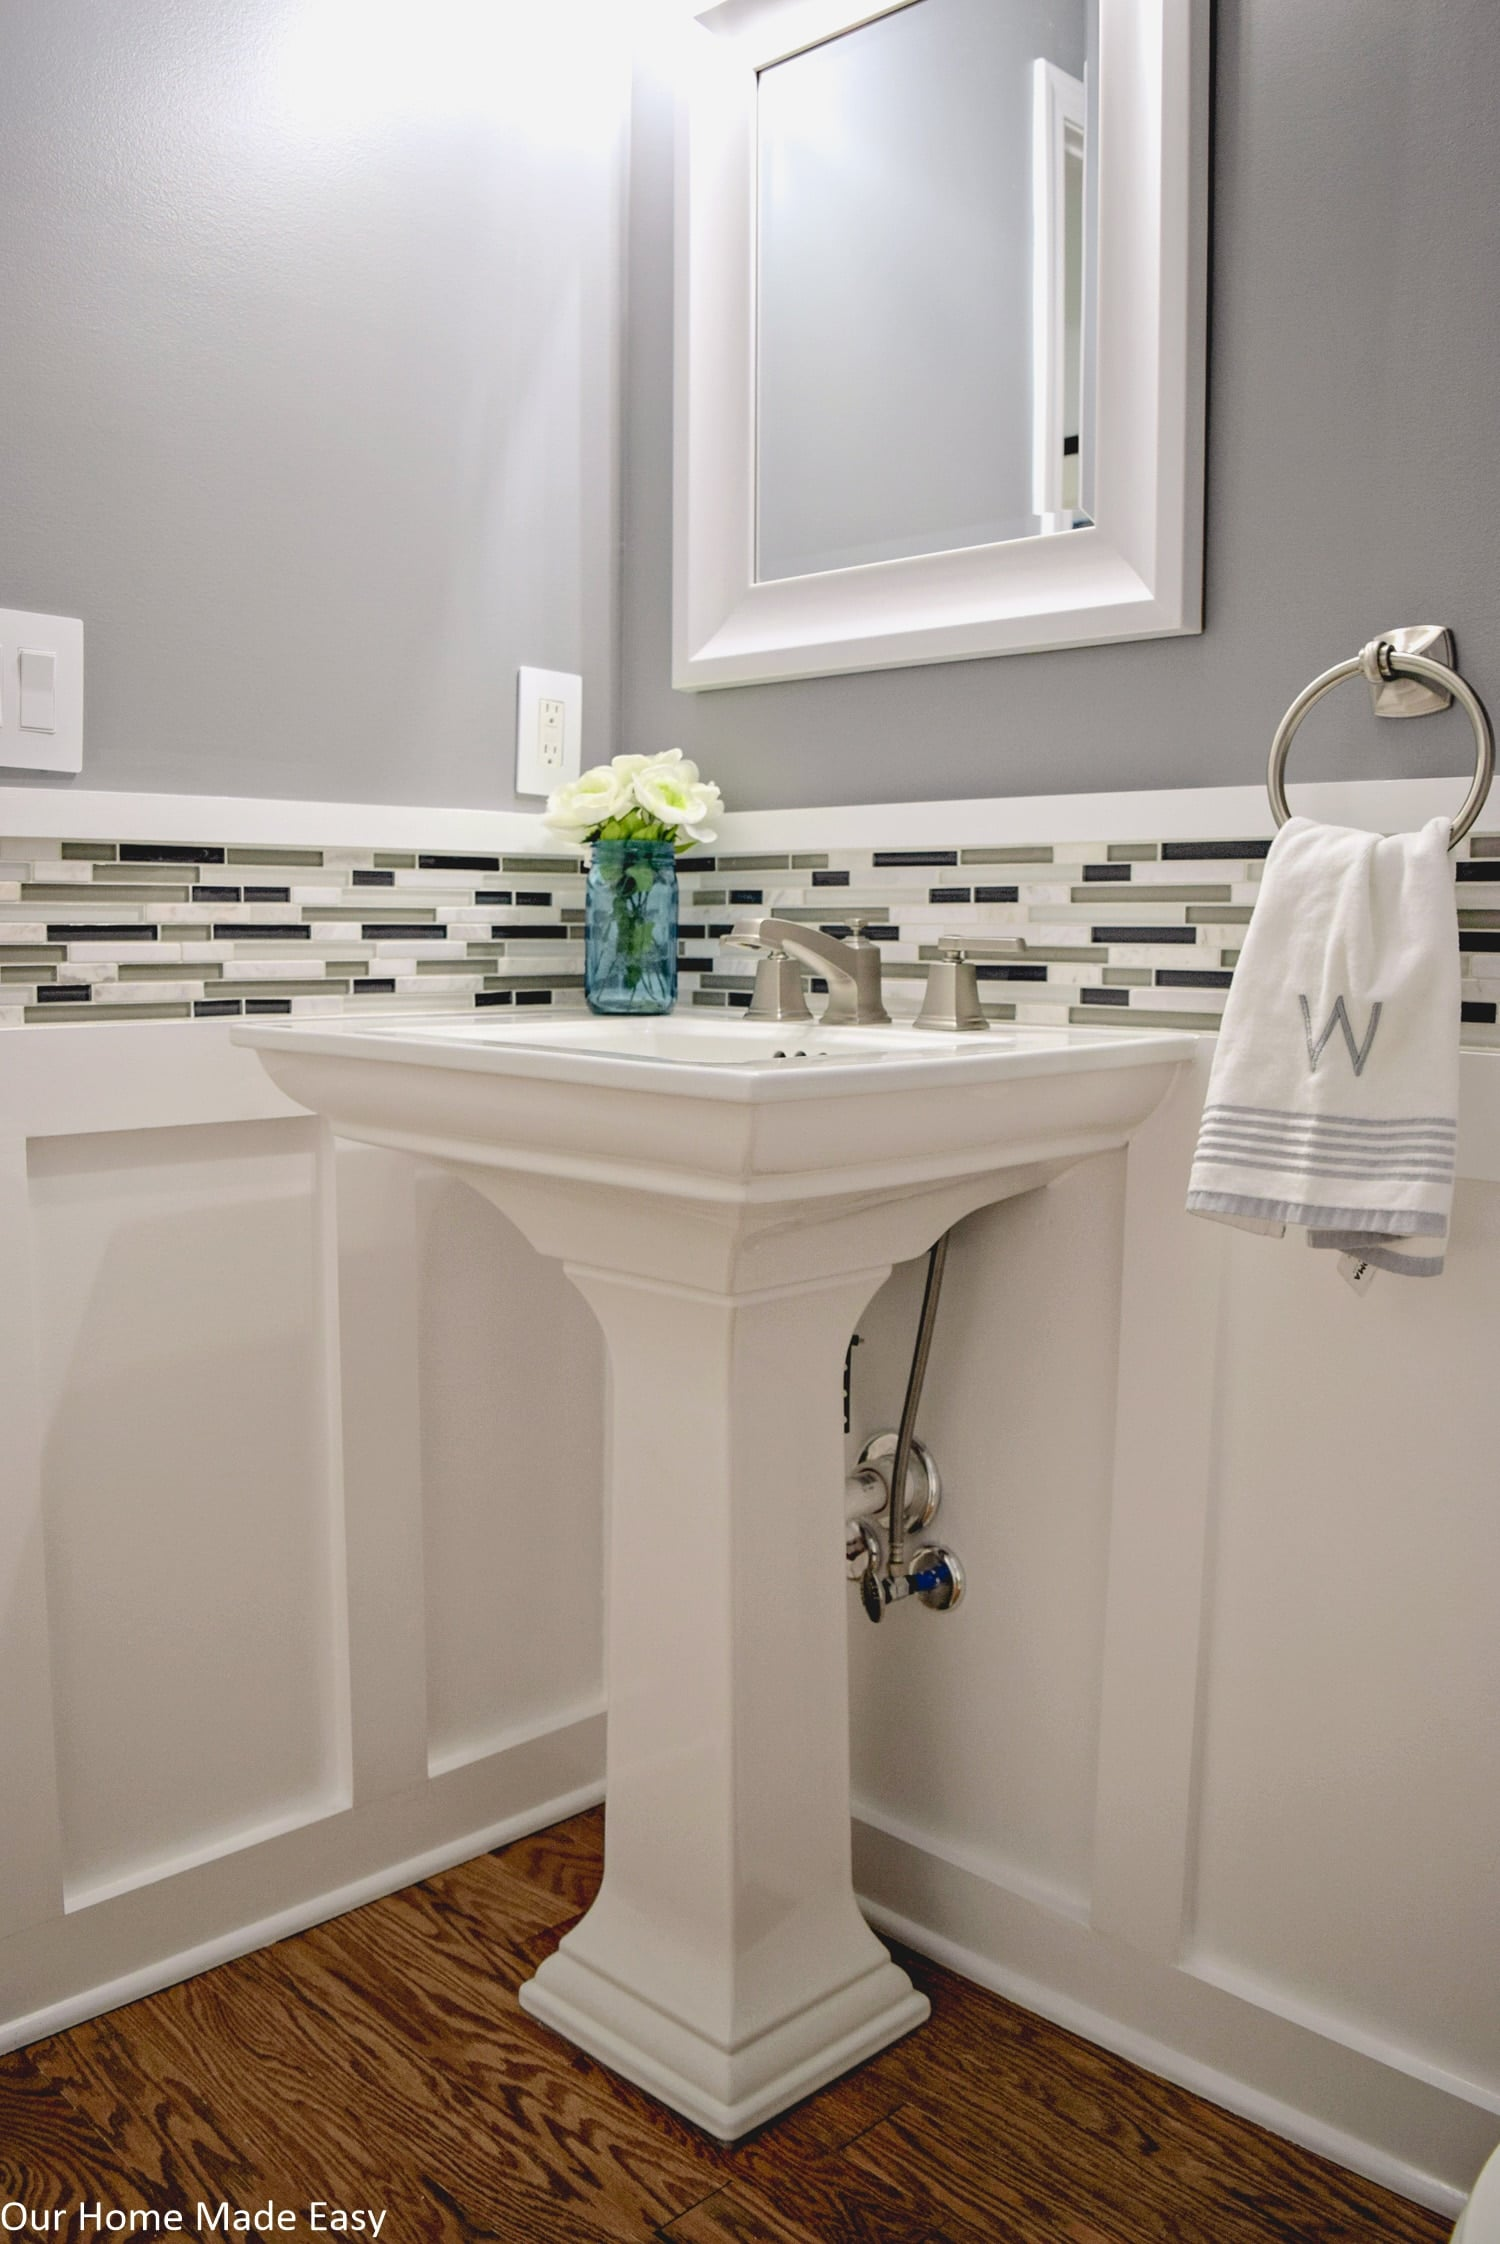 A fully updated bathroom will make your house appealing to buyers